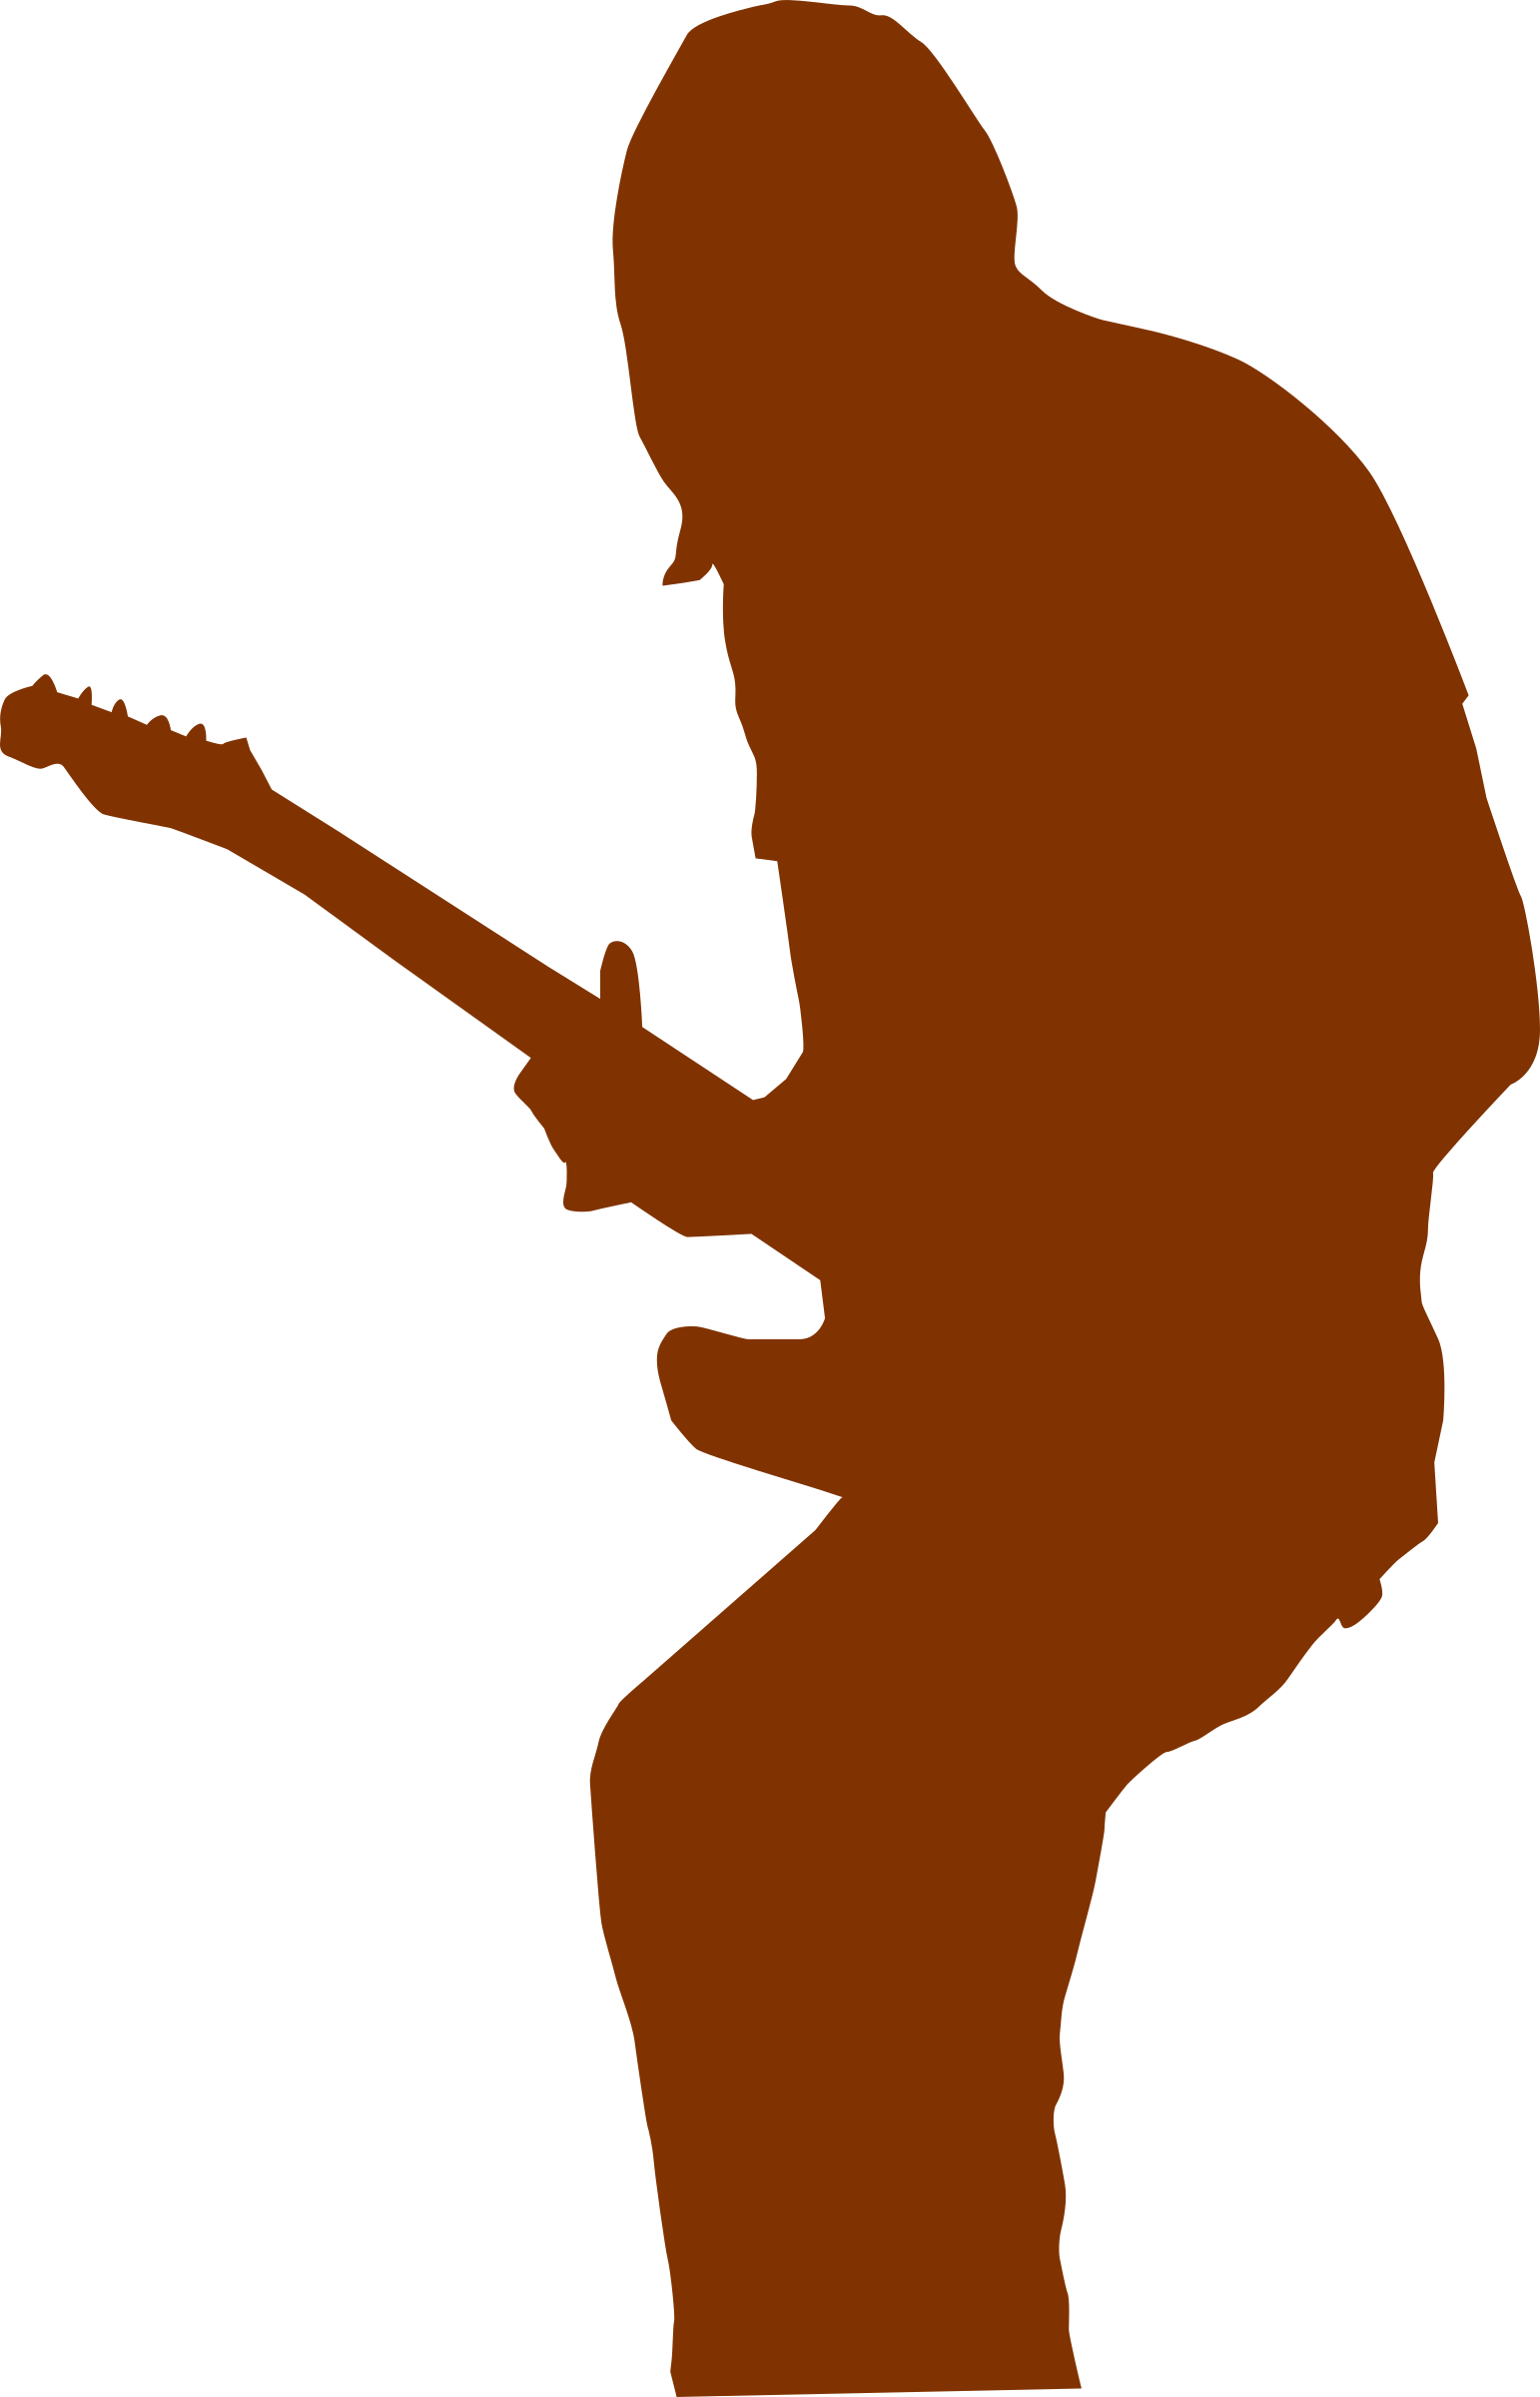 guitar player openclipart